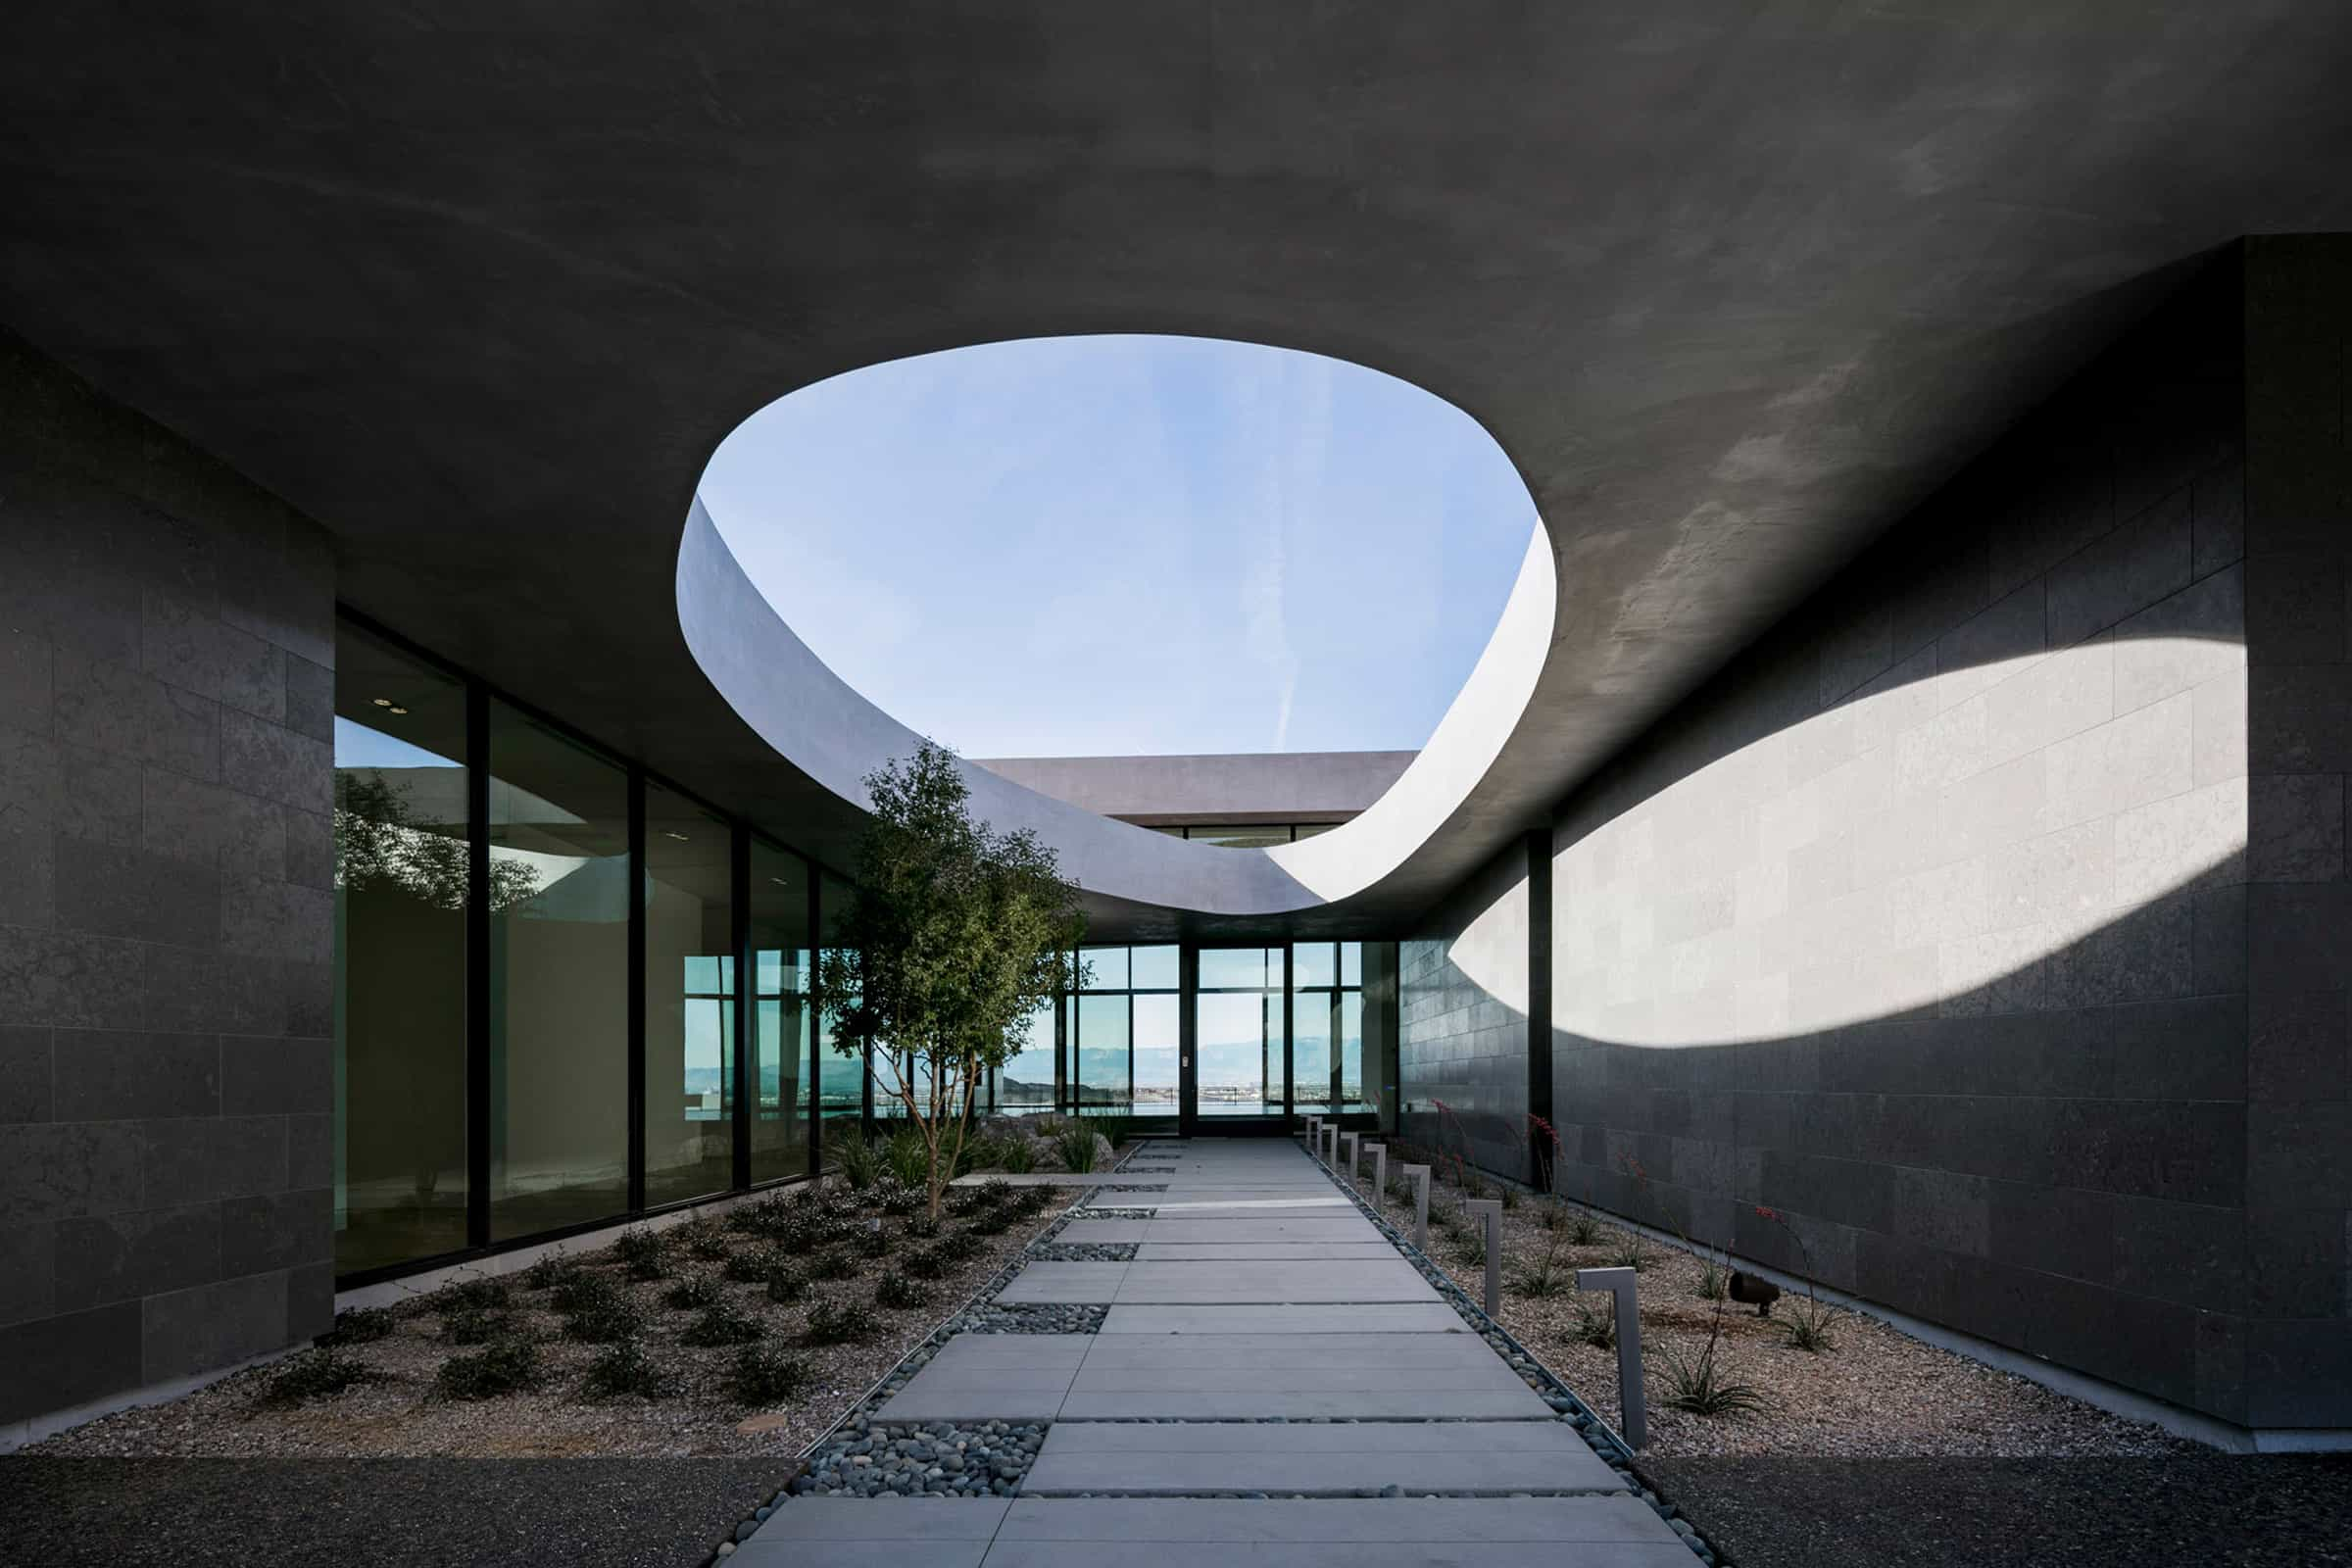 5 Tips to improve your architectural photography